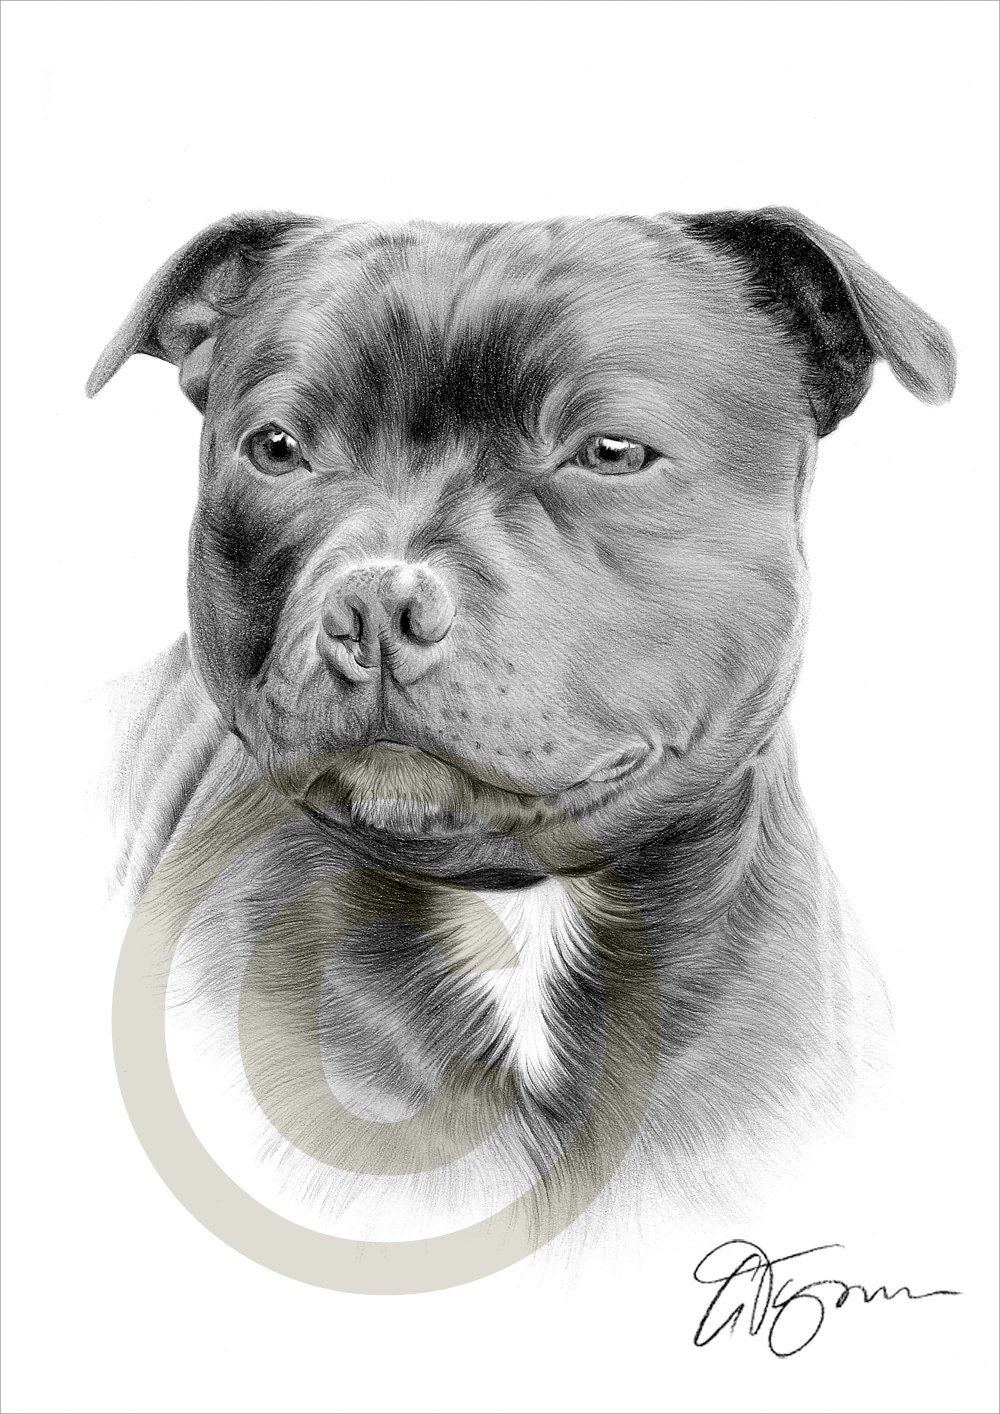 Dog staffordshire bull terrier pencil drawing print a4 size - Dessin de pitbull ...